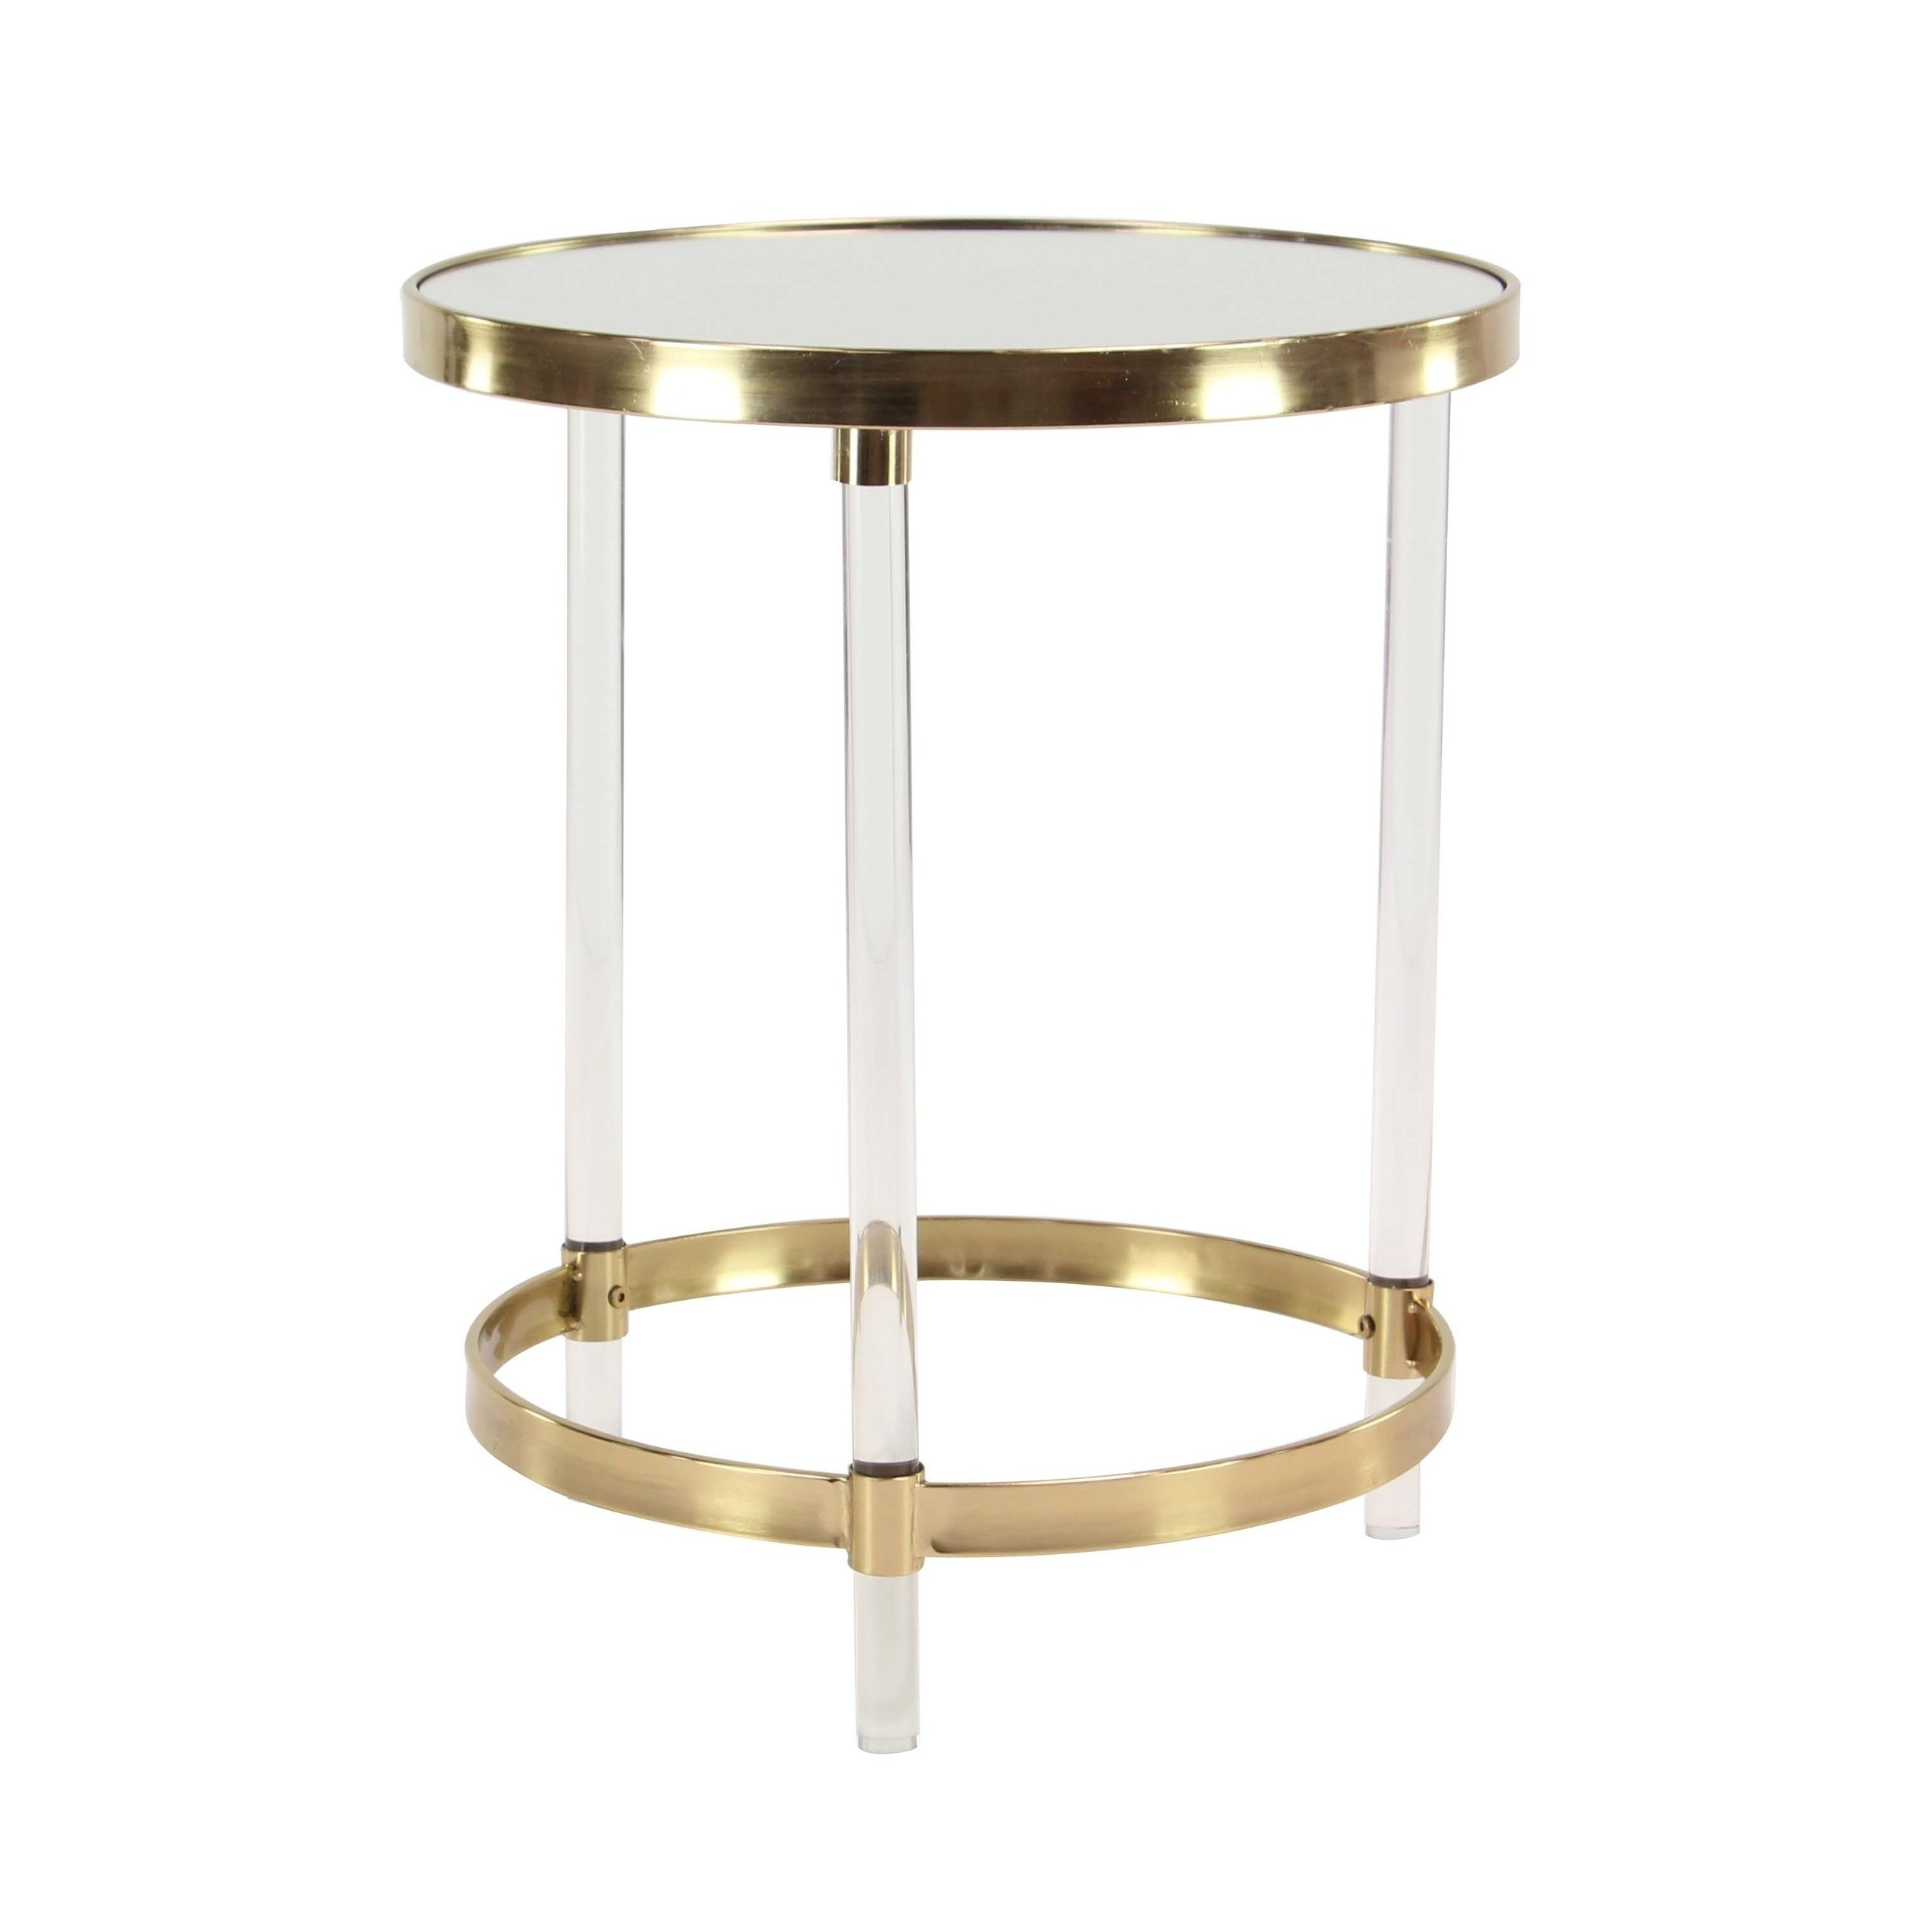 modern inch round iron and acrylic accent table studio free shipping today target nate berkus bedding marble top coffee rectangle nautical chandelier shades west elm dining